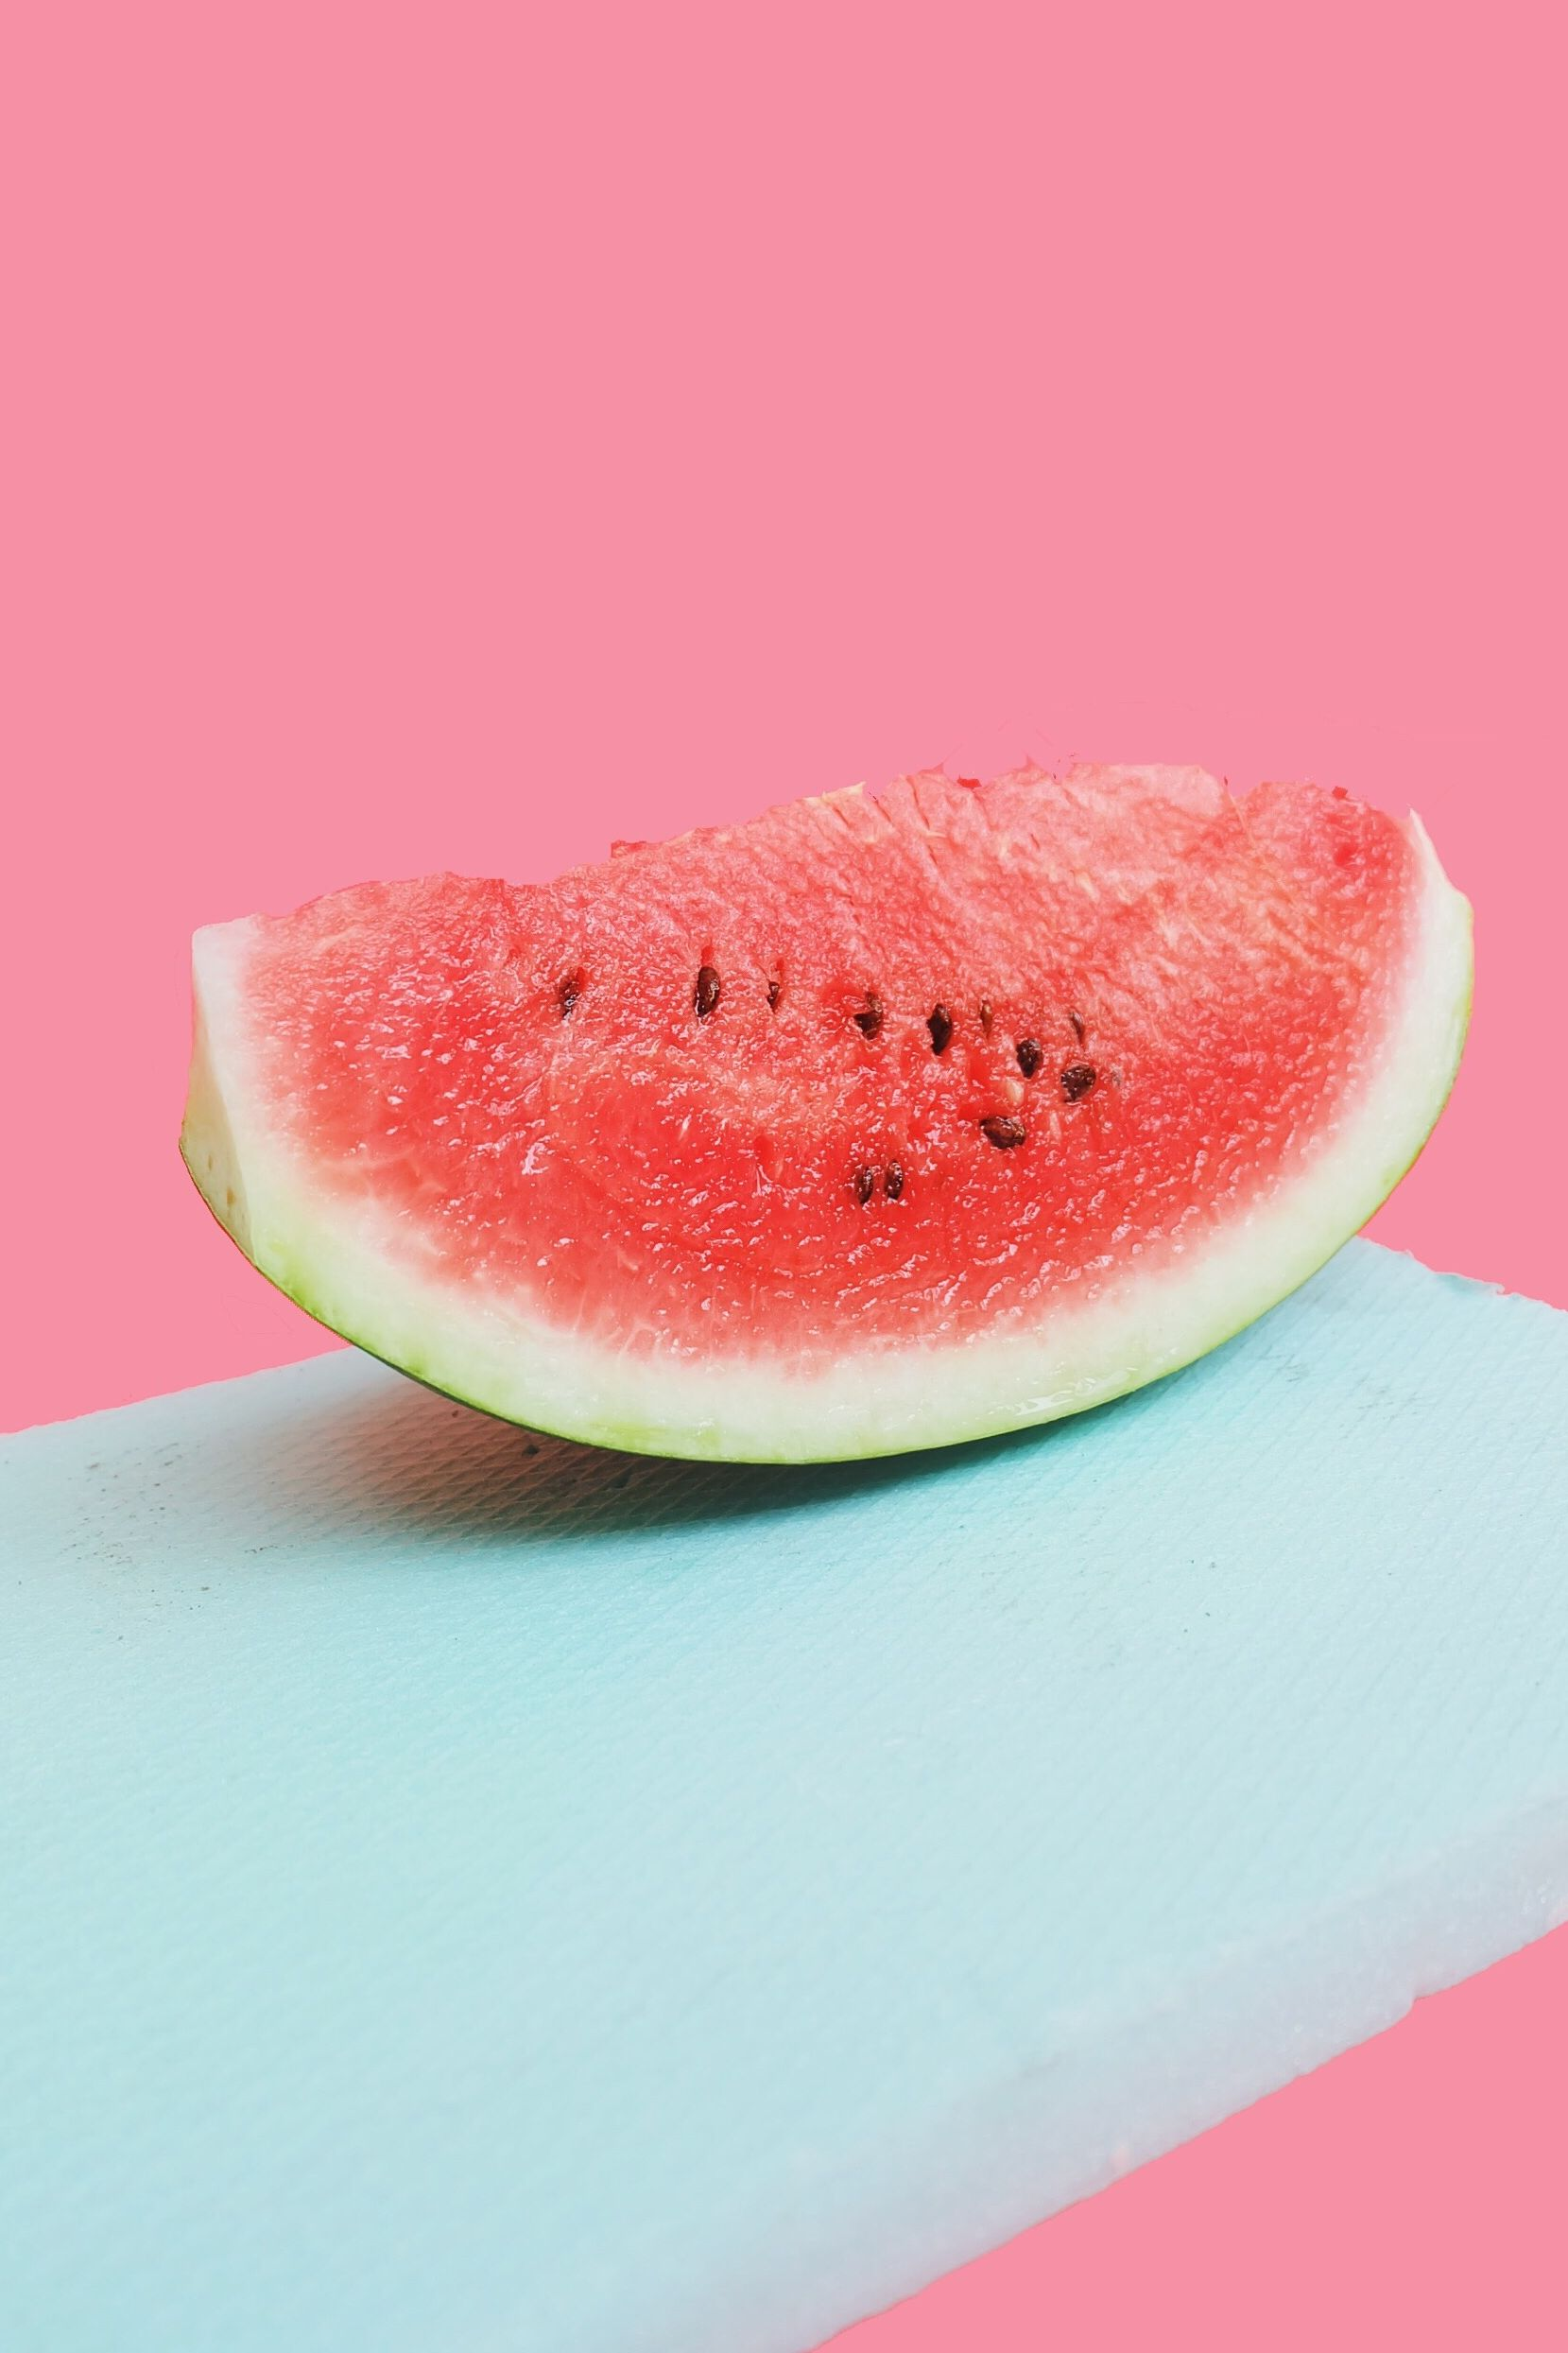 Close-Up Of Watermelon Slice On Cutting Board Against Pink Background